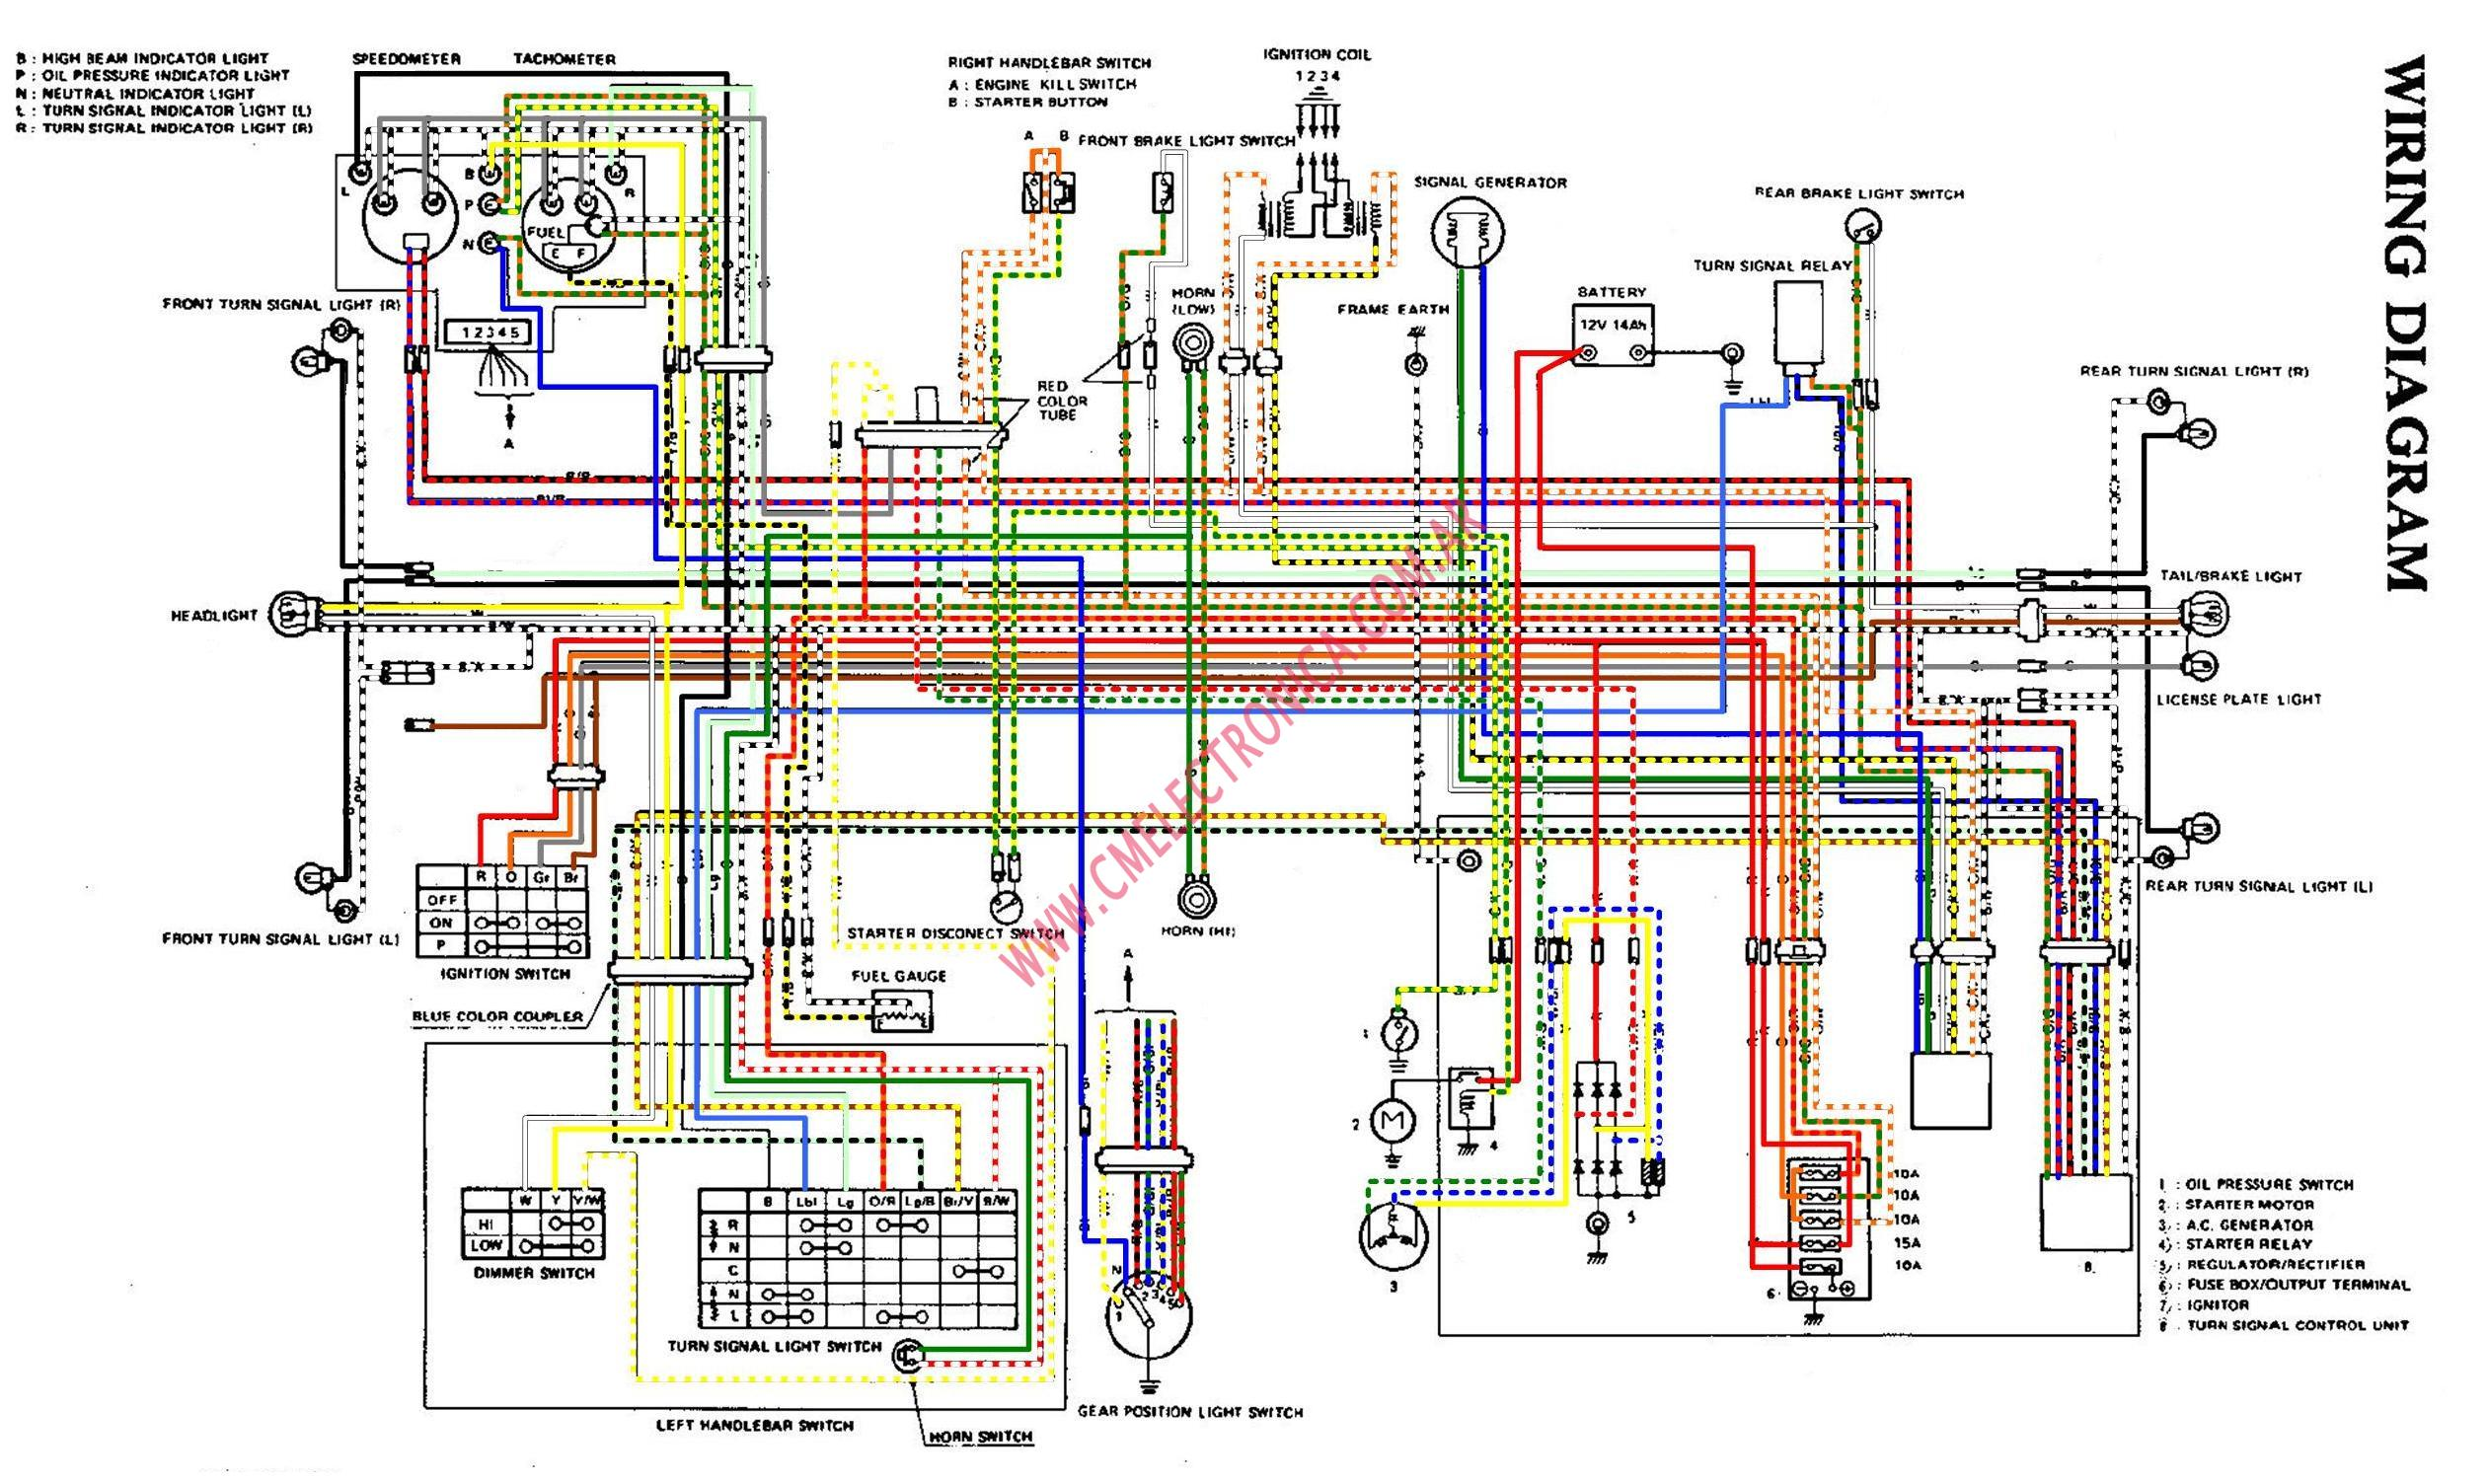 805 suzuki motorcycle wiring diagrams electrical wiring suzuki wagon r  electrical wiring diagram